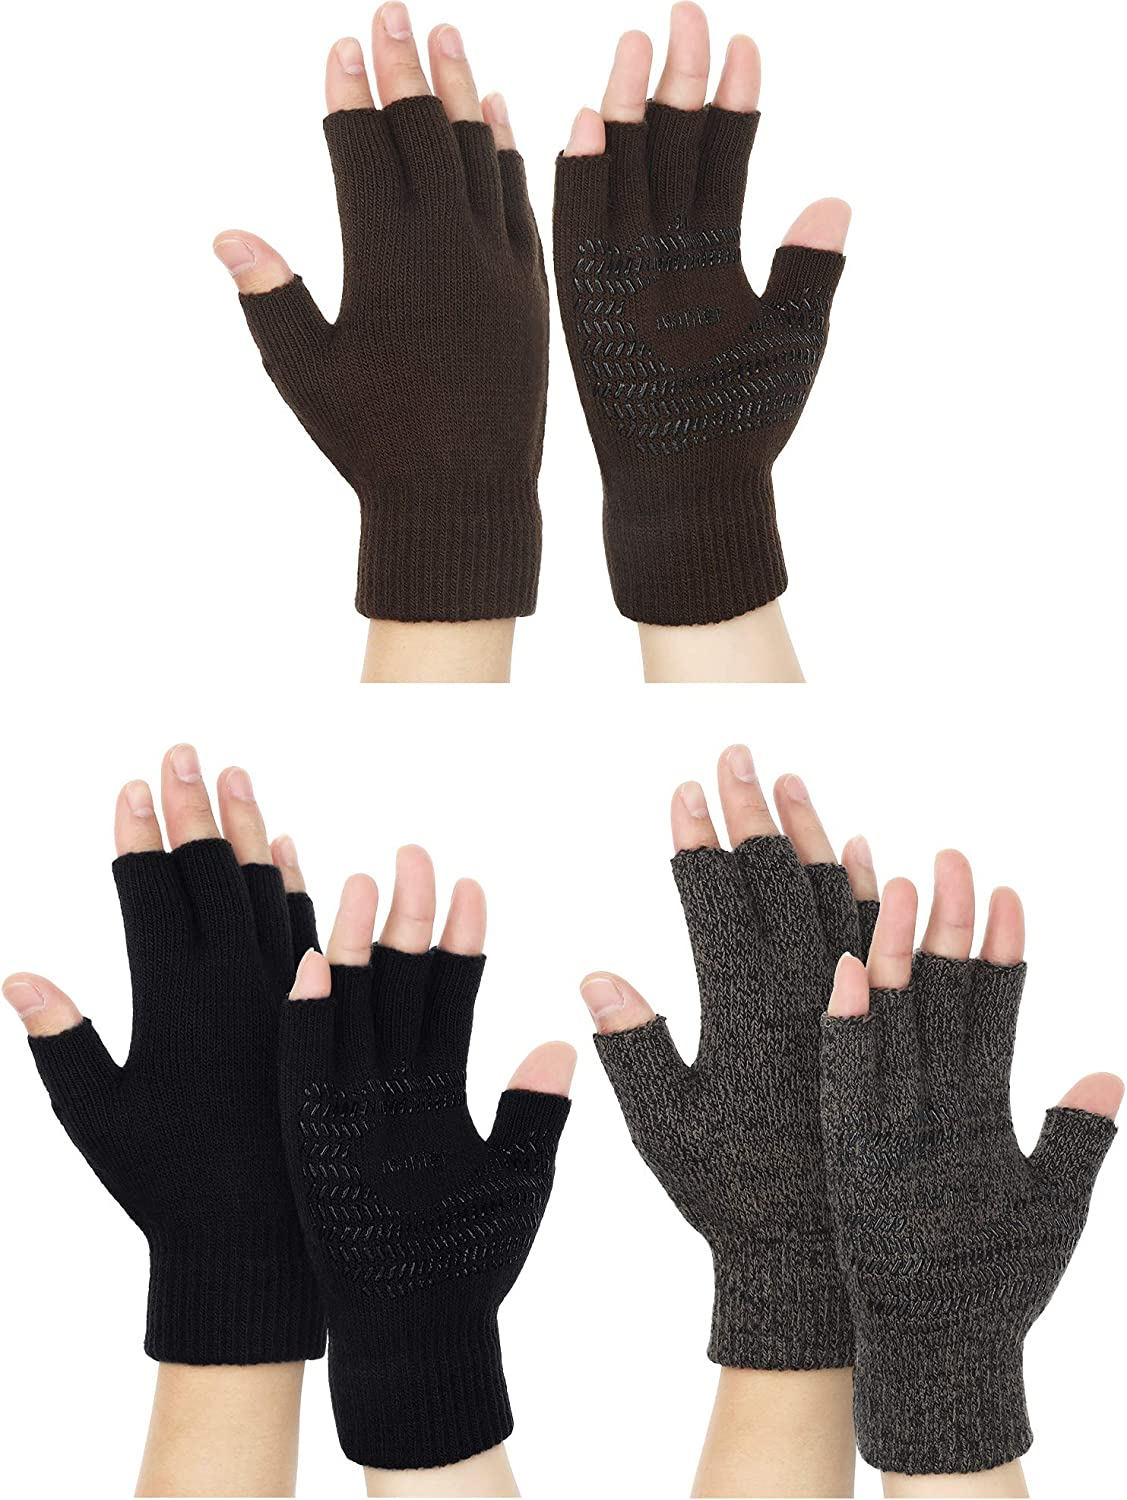 3 Pairs Winter Half Finger Knit Glove Stretchy Anti-Slip Fingerless Mitten for Unisex